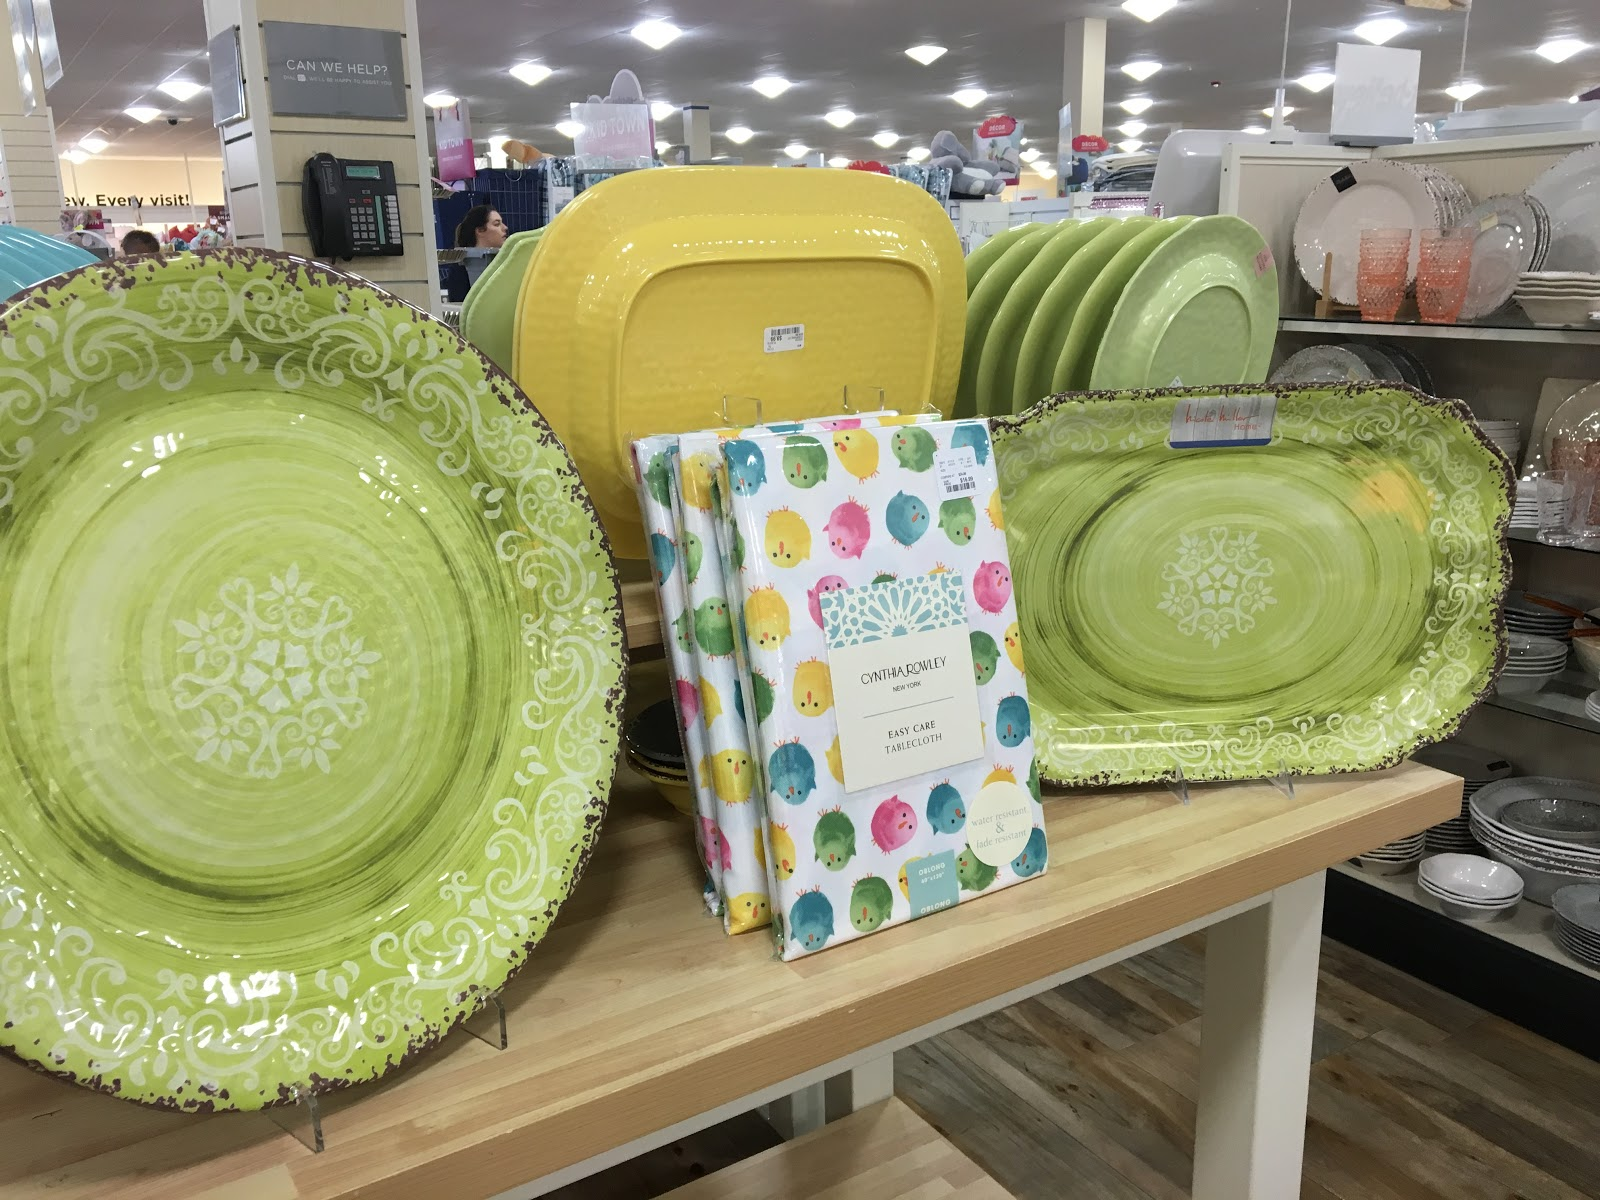 And These Gles Ok It Was Here That I Almost Threw Caution To The Wind Completely Started Over Like A New Bride Honestly Homegoods You Re